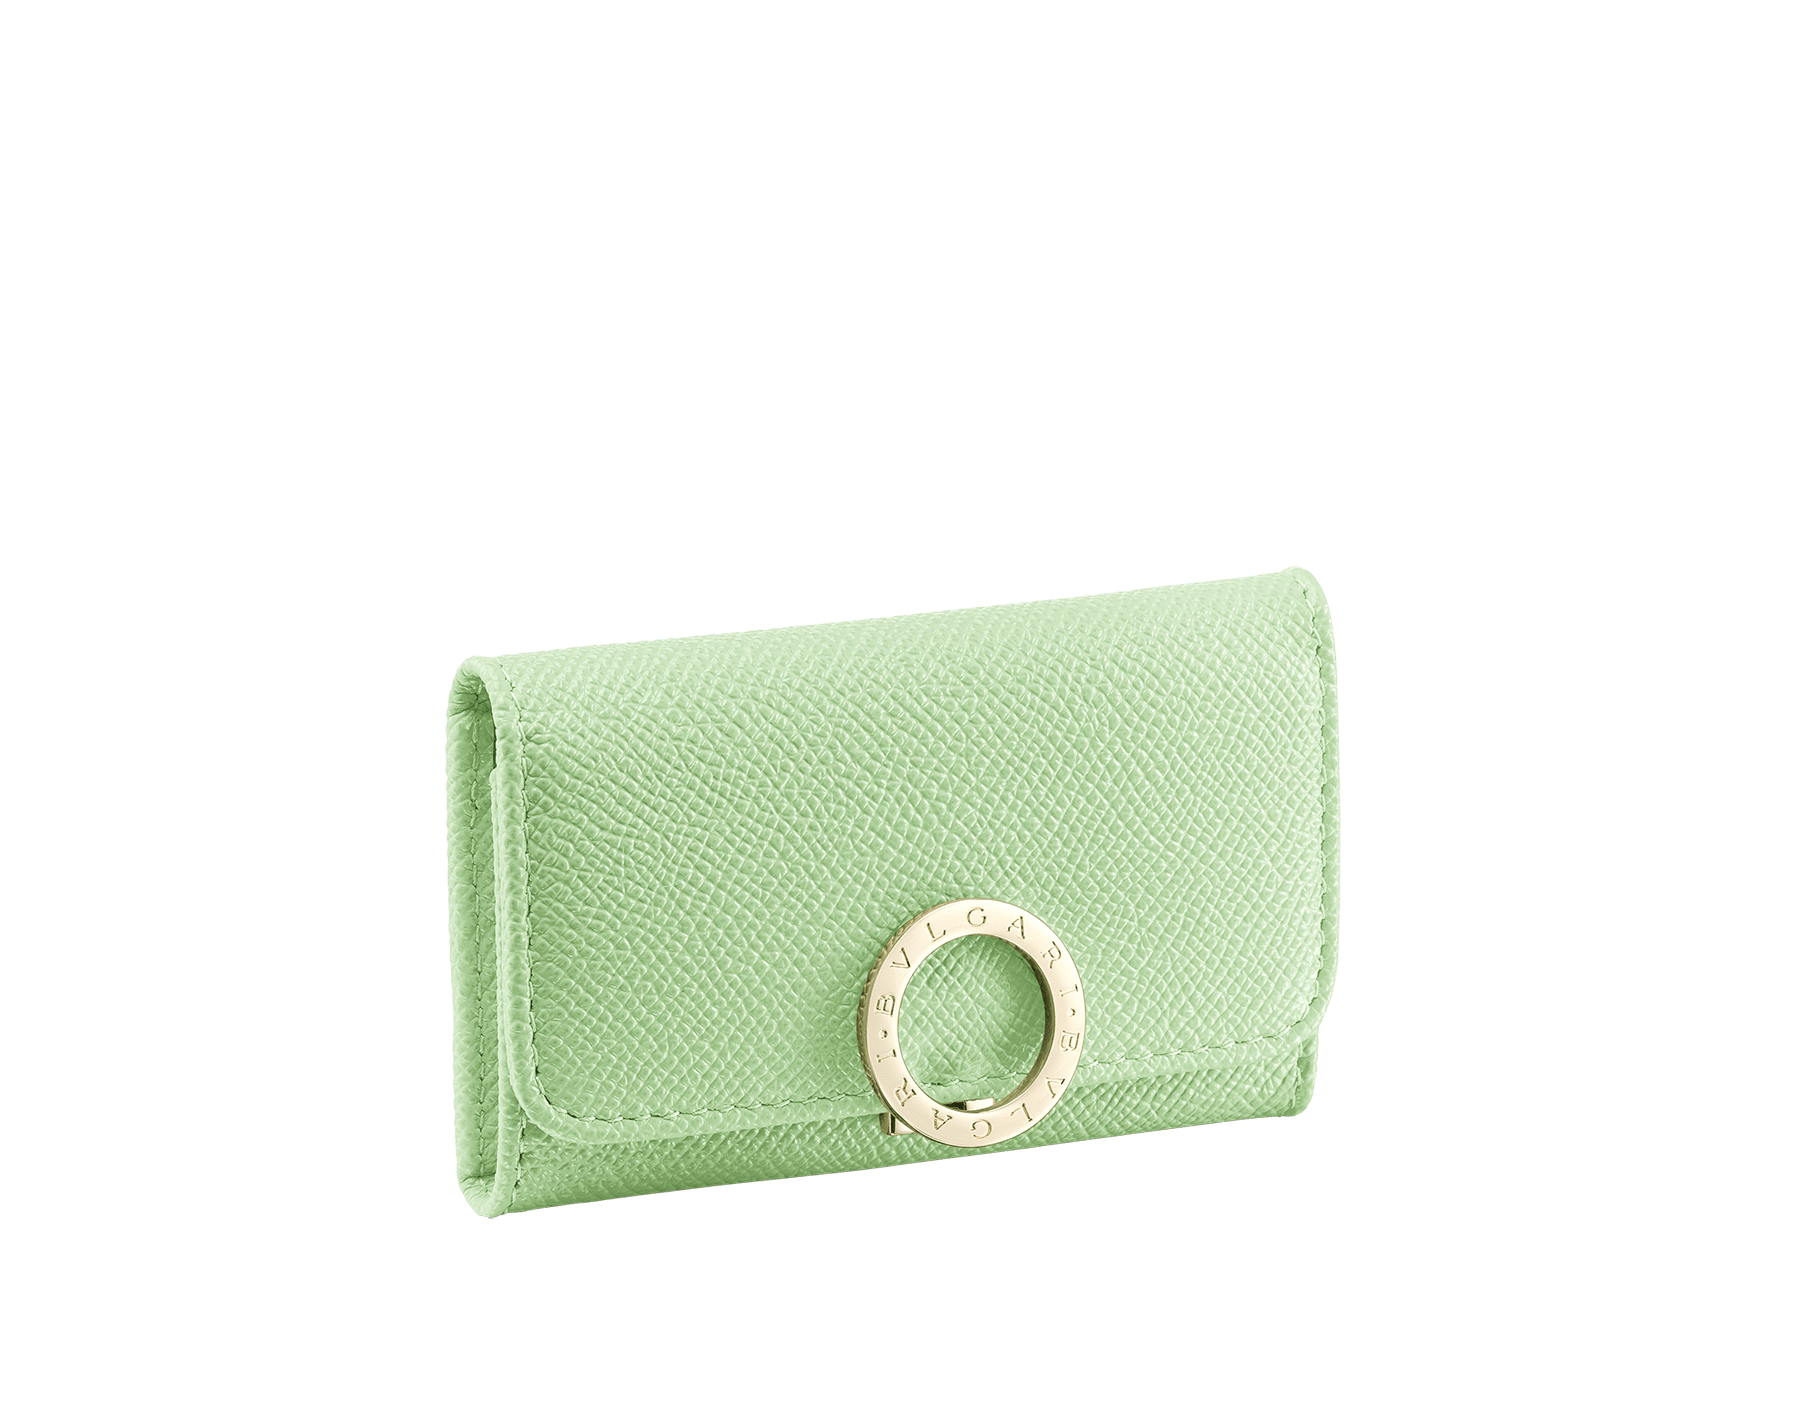 """BVLGARI BVLGARI"" small key holder in mint bright grain calf leather and taffy quartz soft nappa leather. Iconic logo clip closure in light gold plated brass. 579-KEYHOLDER-Sa image 1"